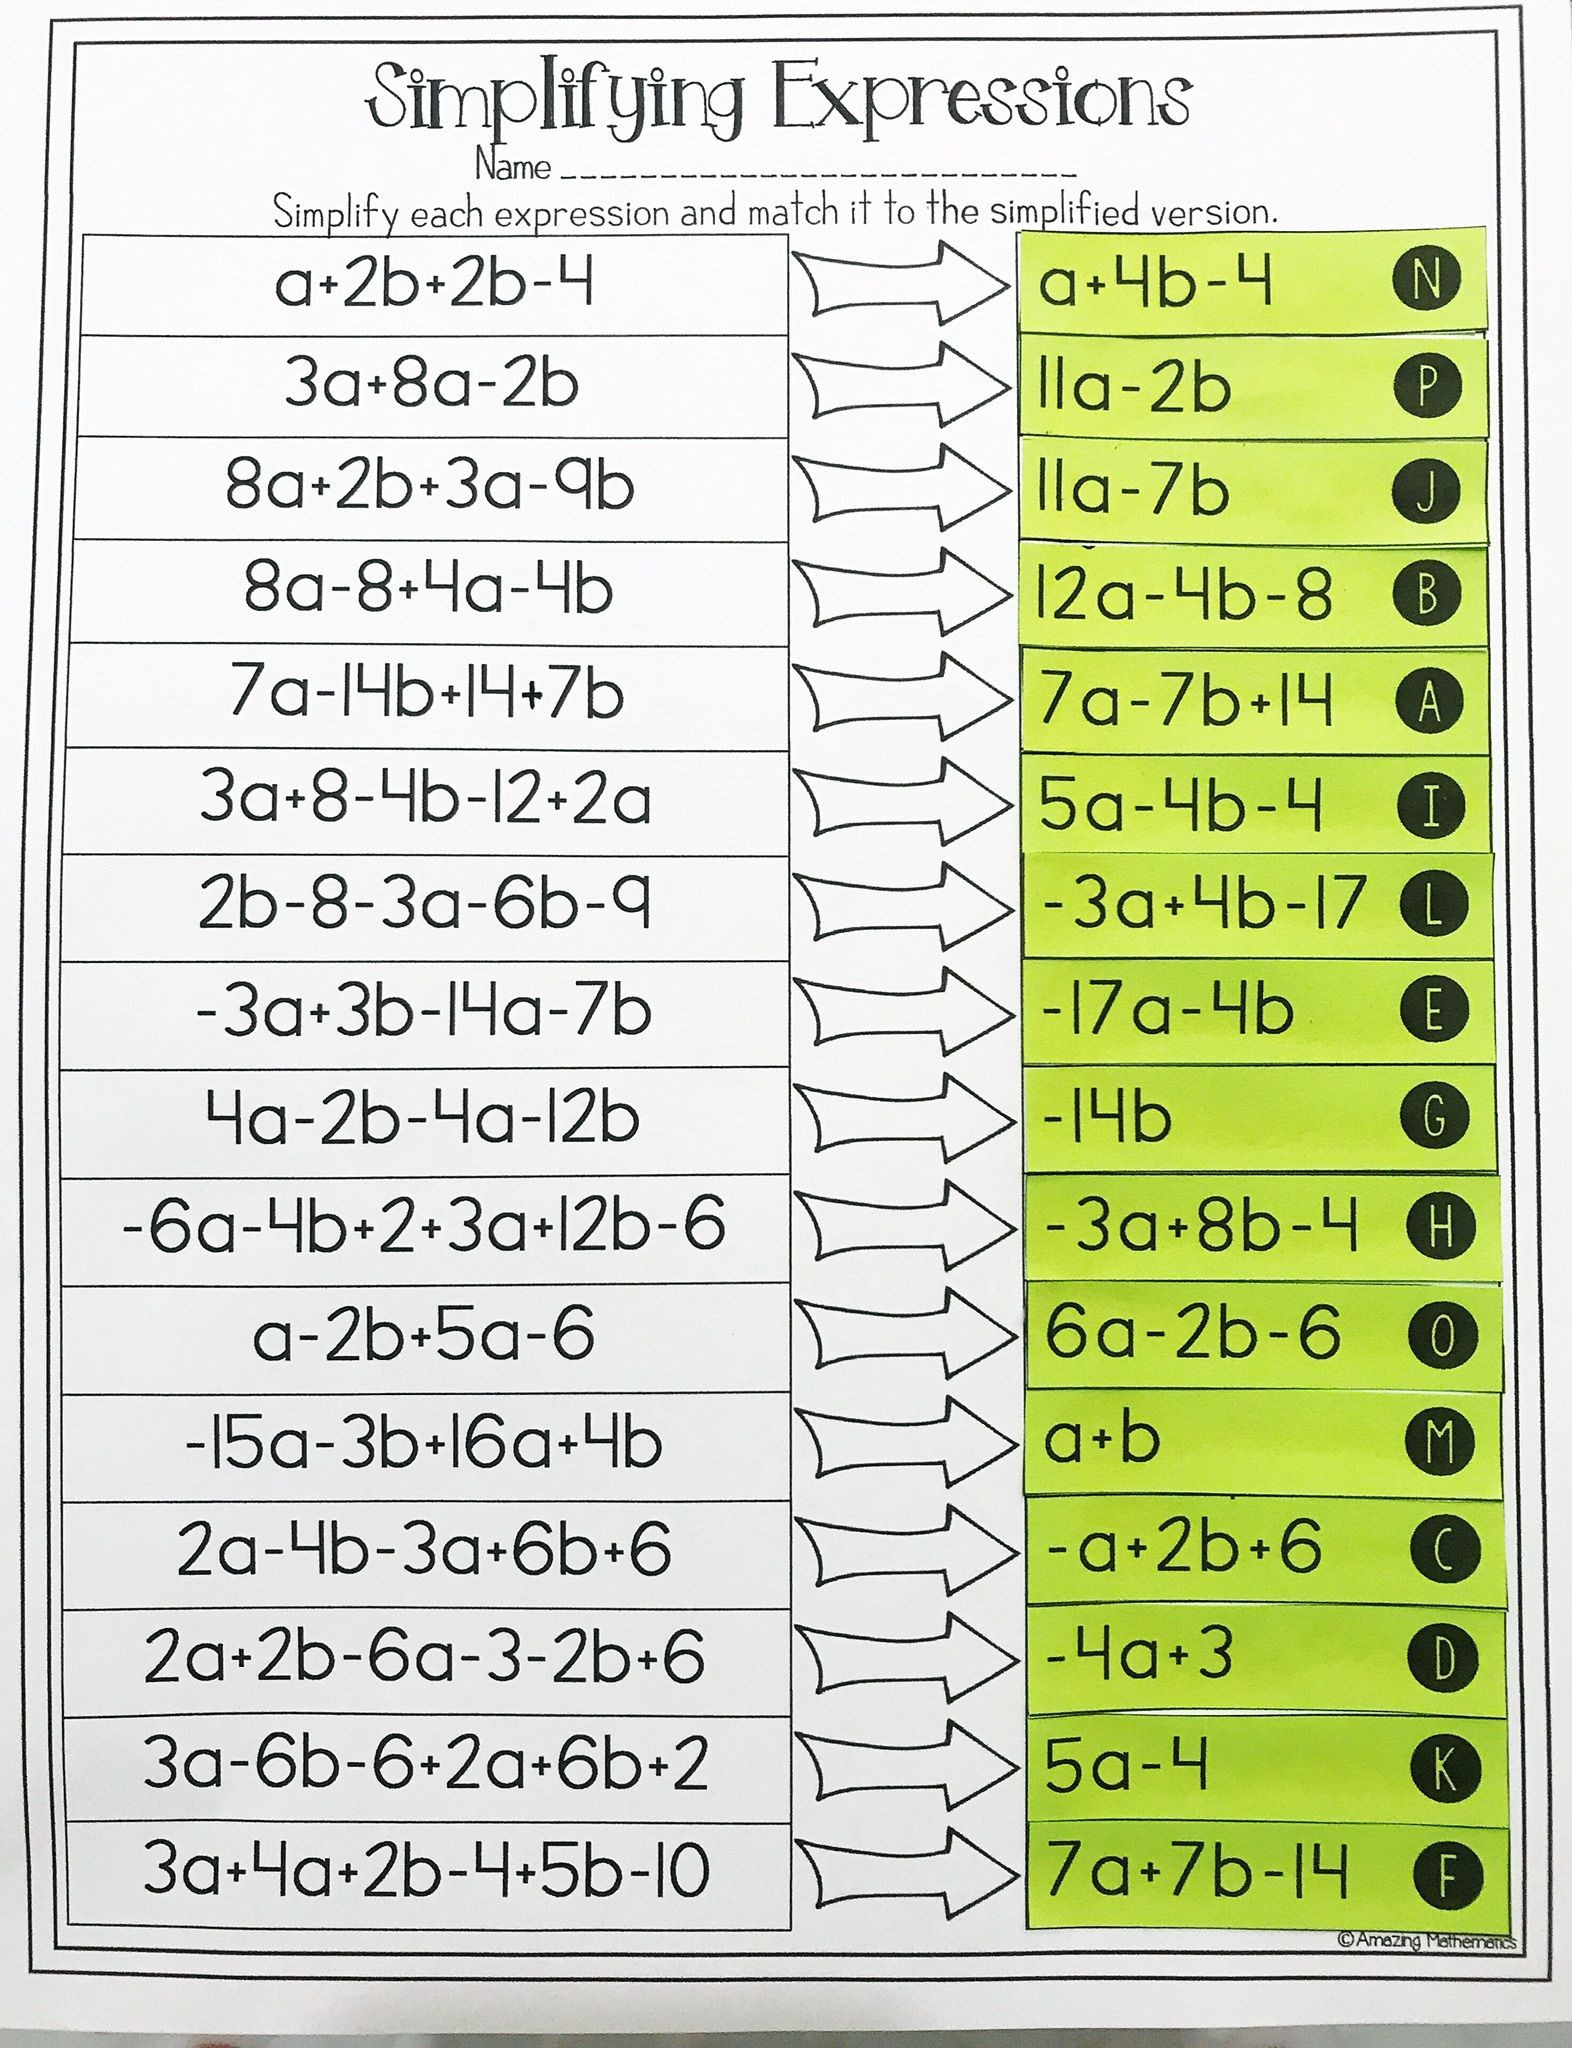 Combining Like Terms Worksheet Answers Bining Like Terms and Simplifying Expressions Matching